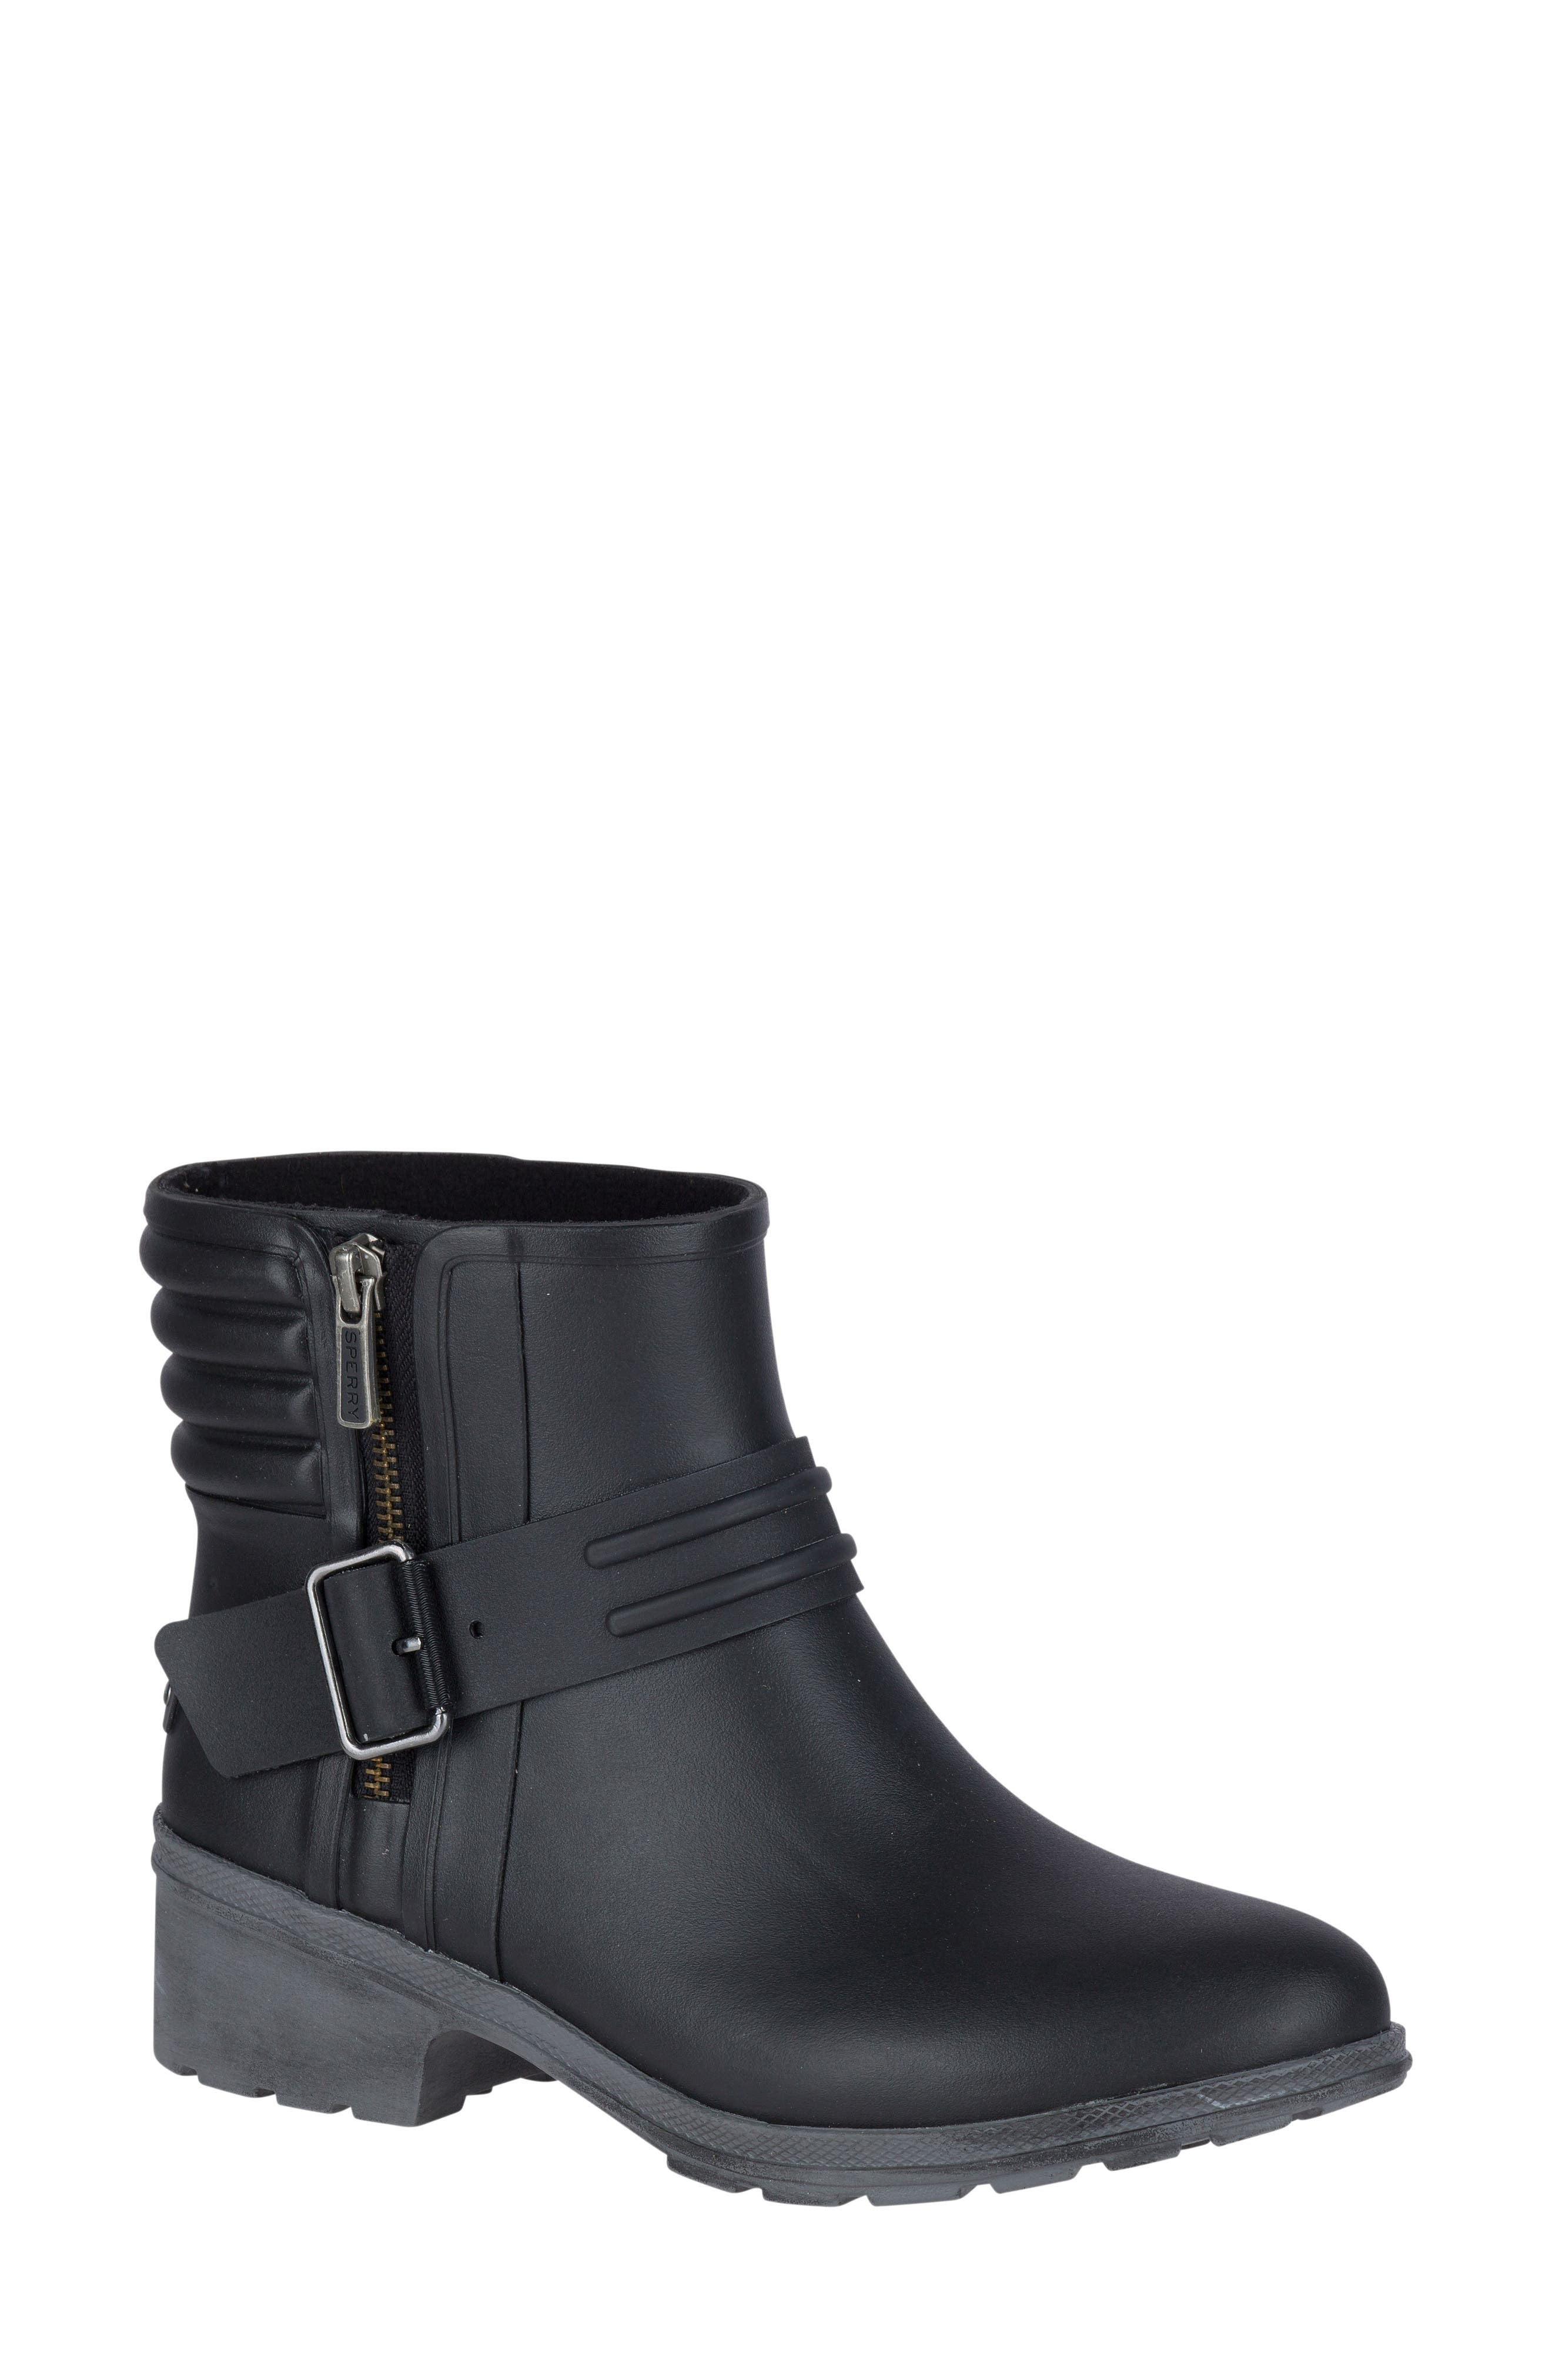 Aeriel Beck Waterproof Bootie,                             Main thumbnail 1, color,                             001